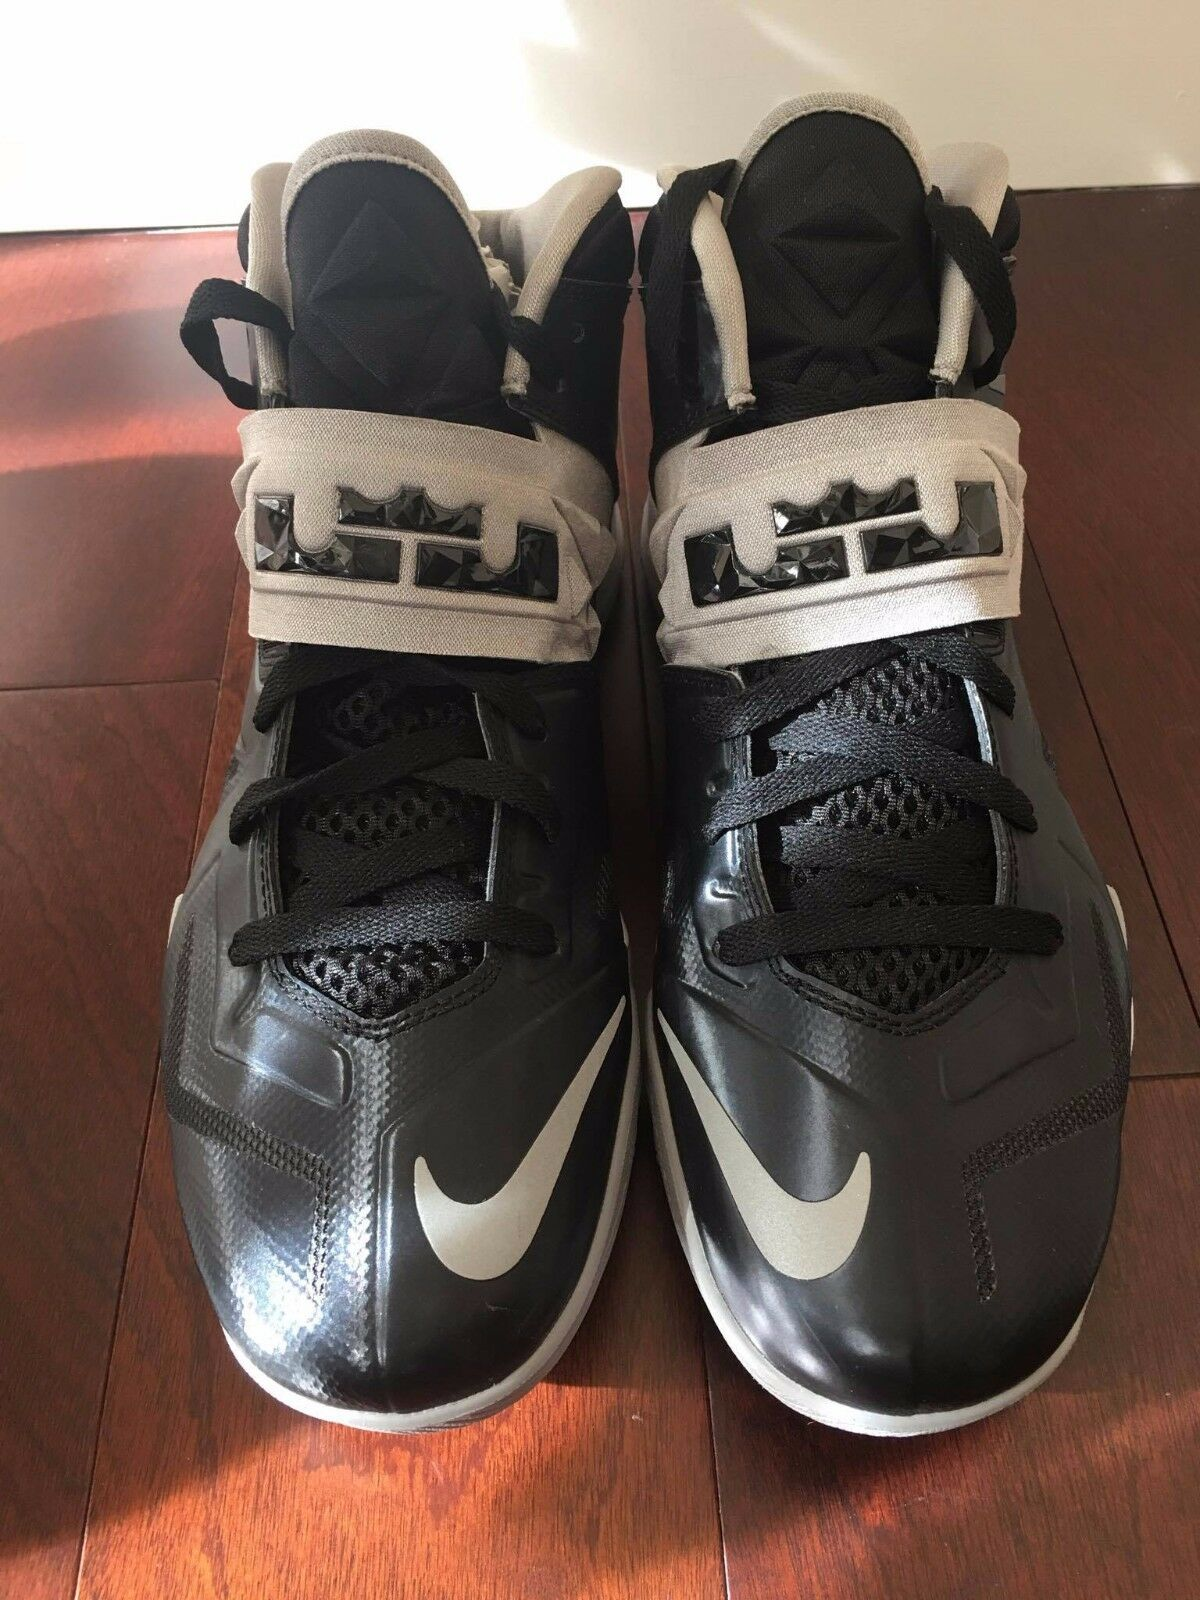 NIKE ZOOM SOLIDER VII SIZE 10.5